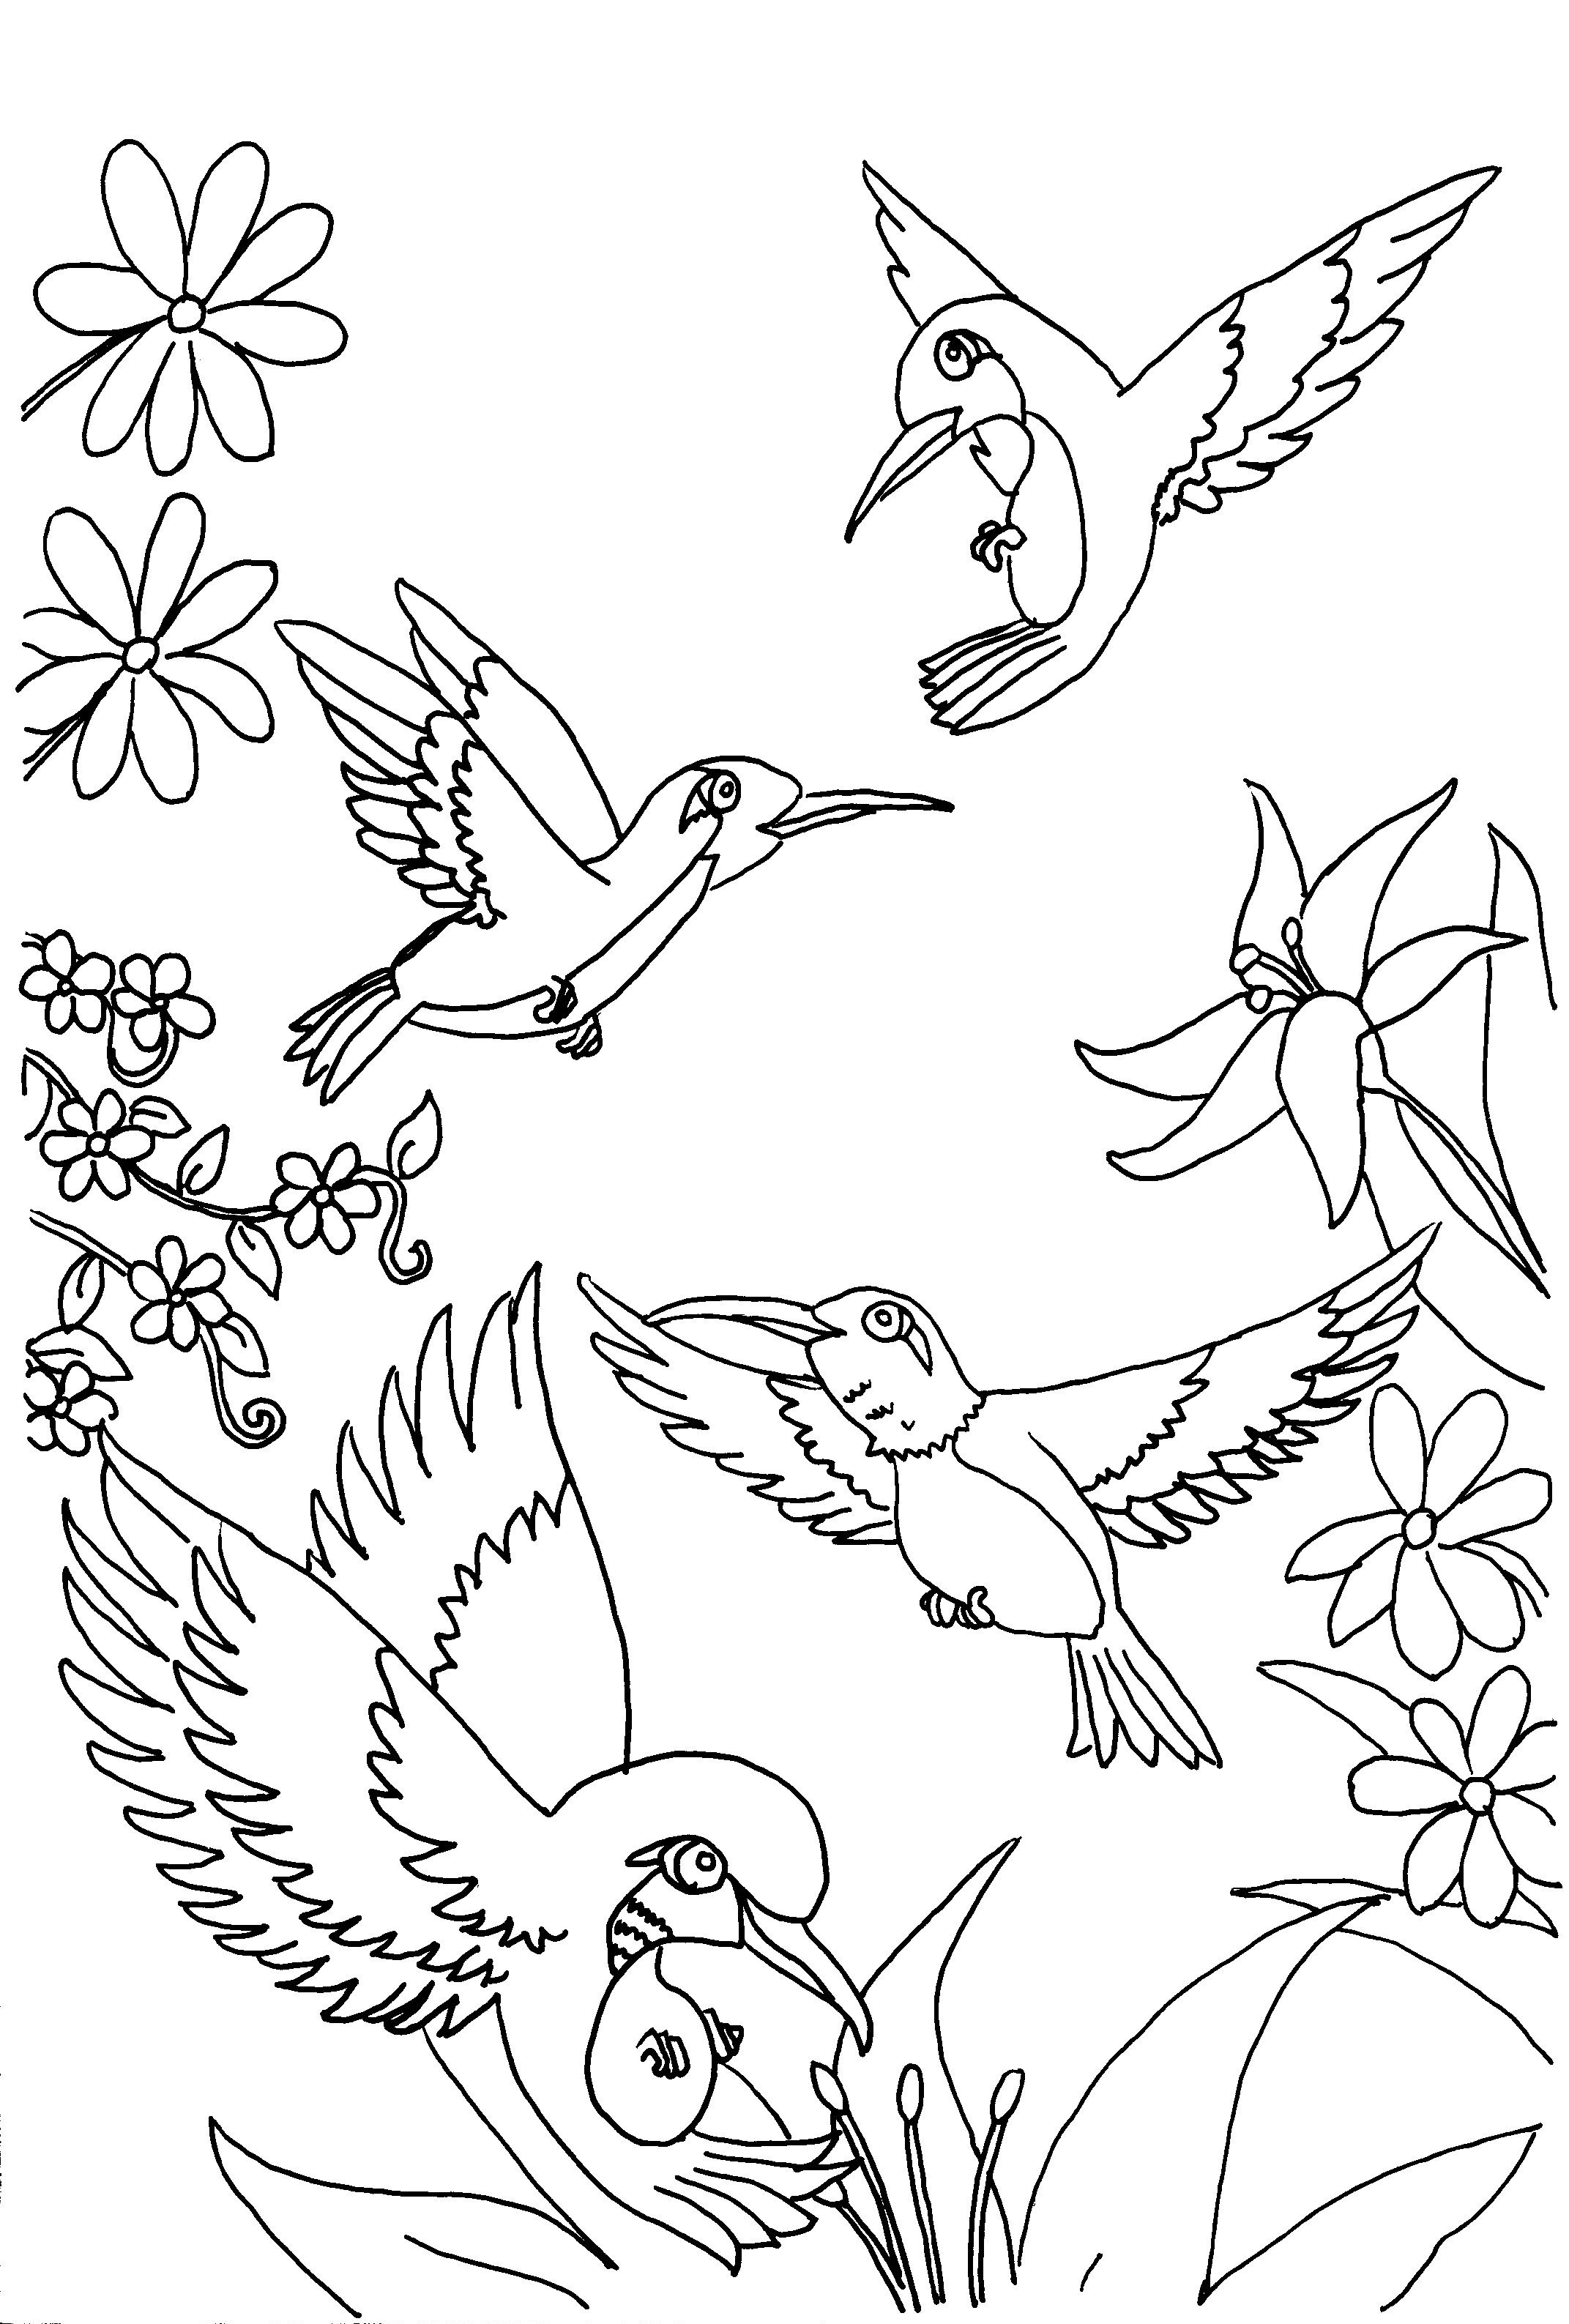 children kids coloring pages free - photo#26